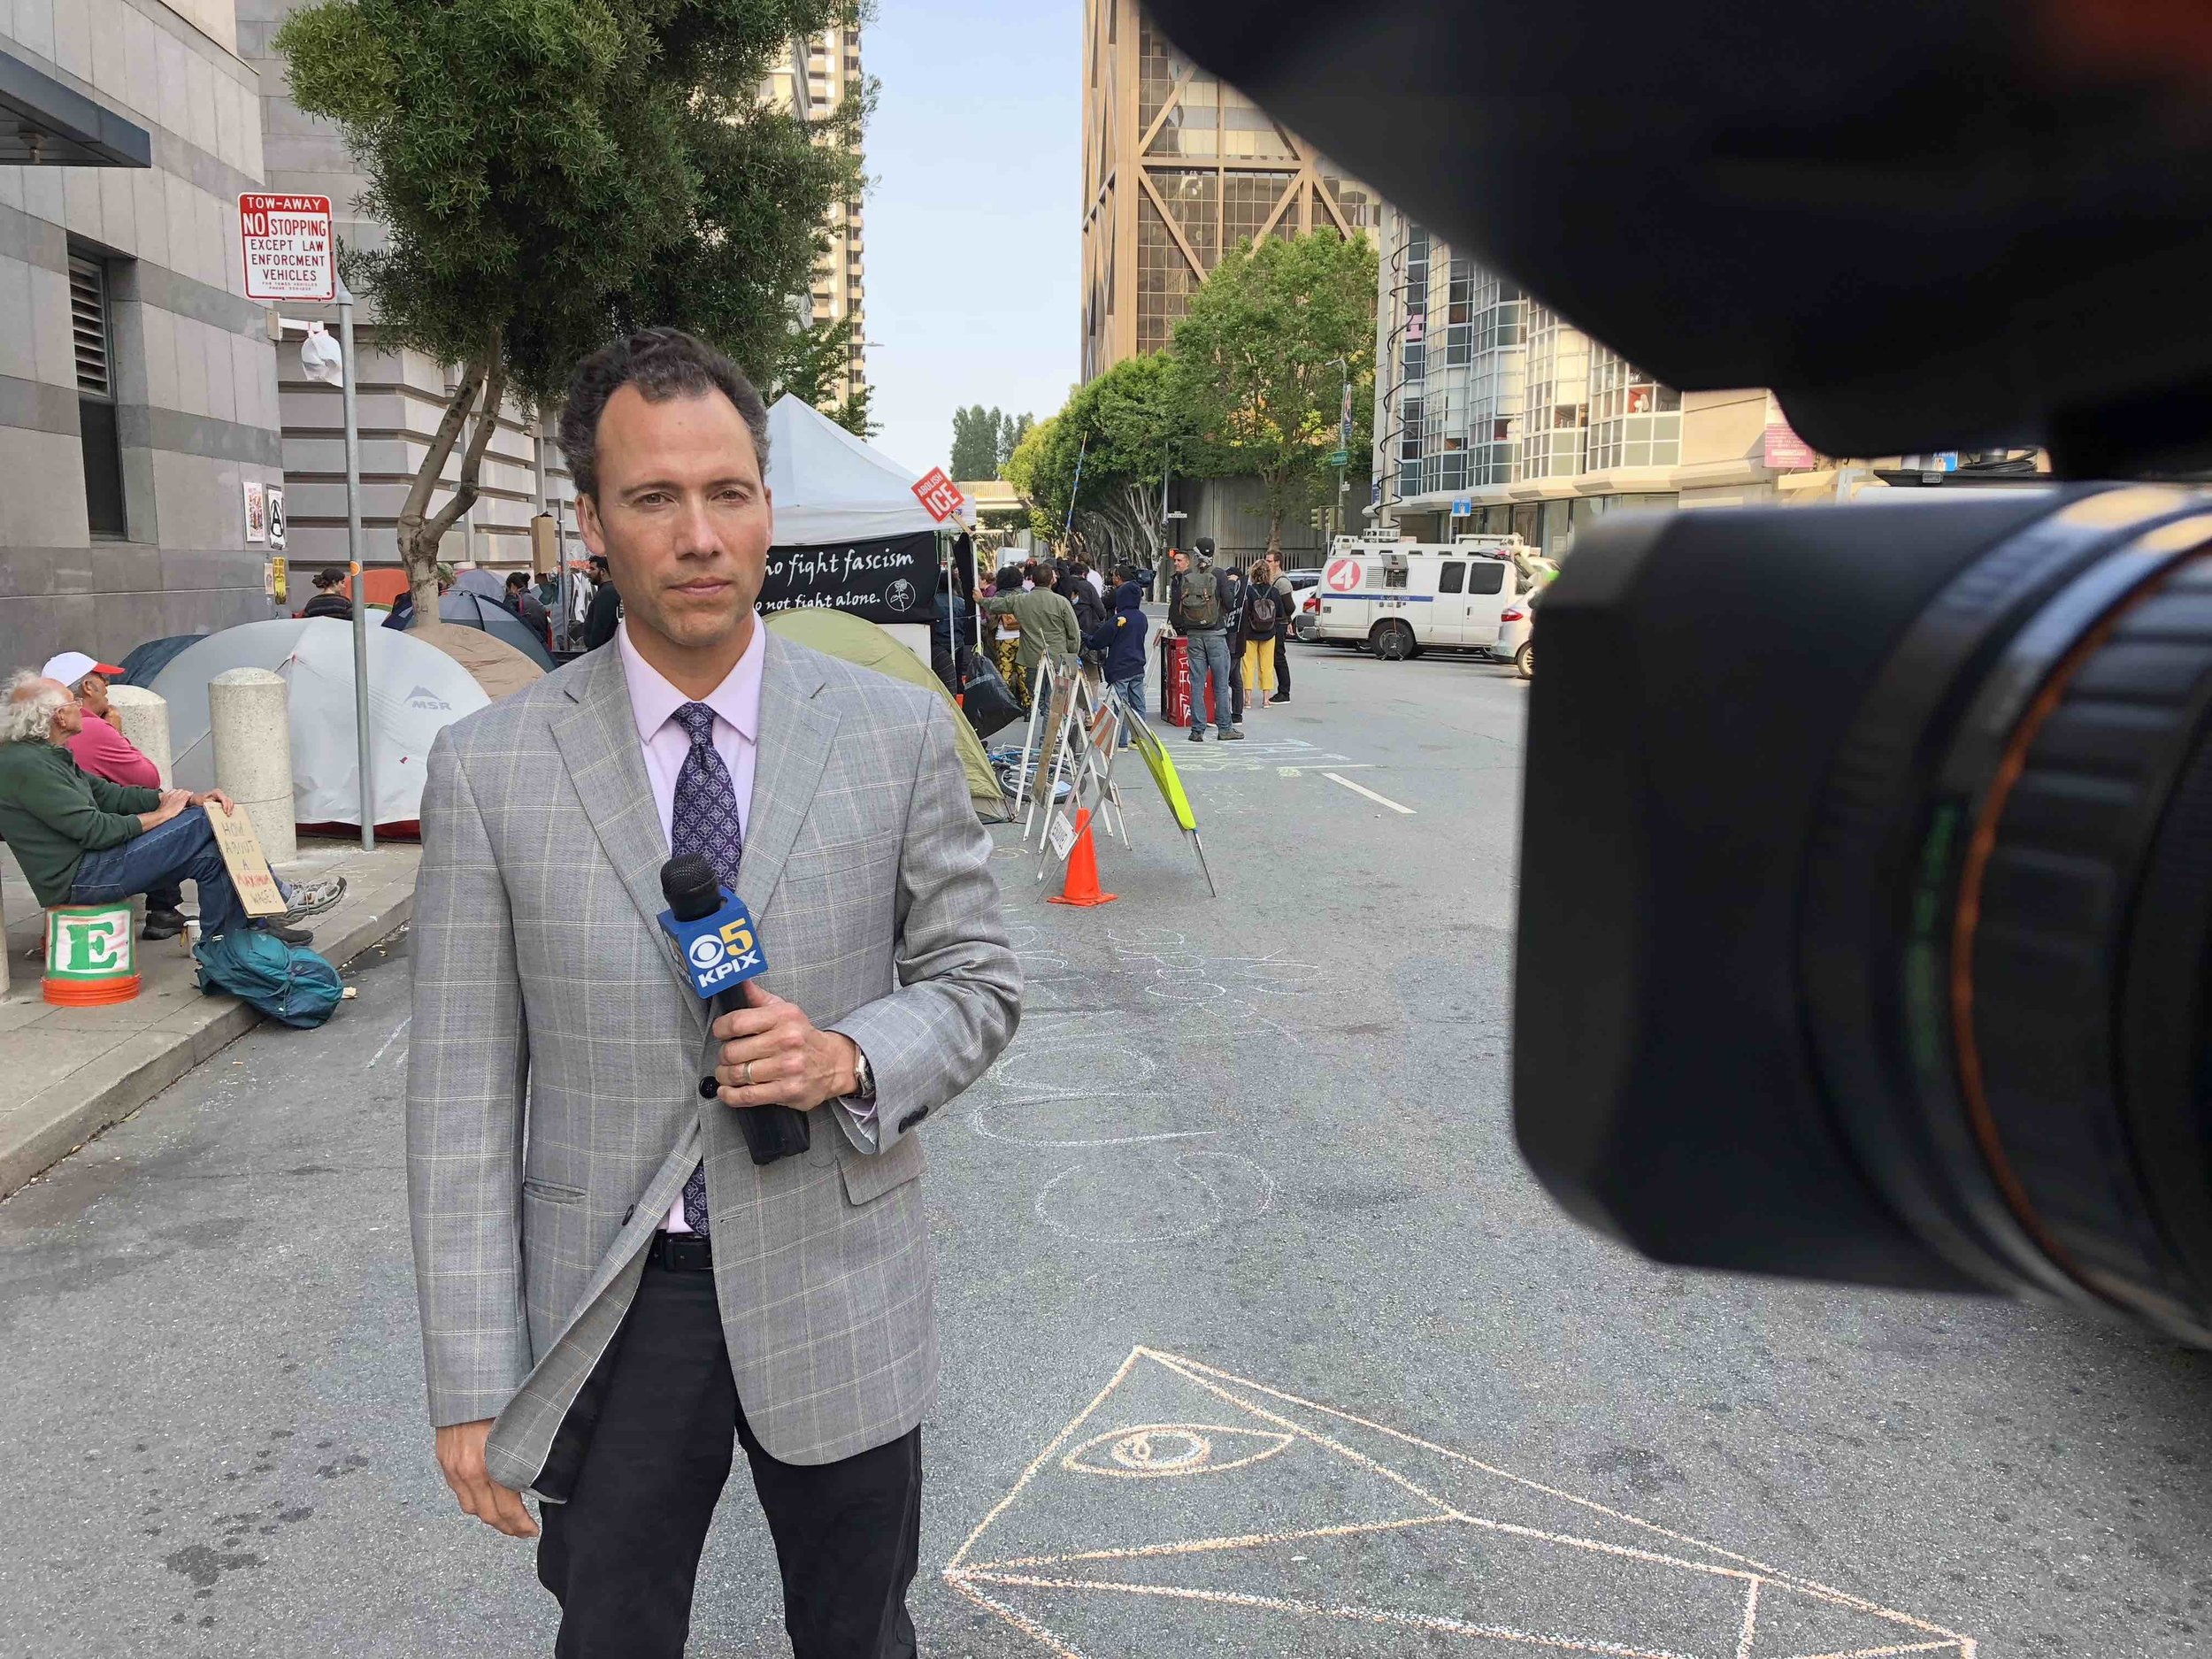 Live shot with protest in the background.